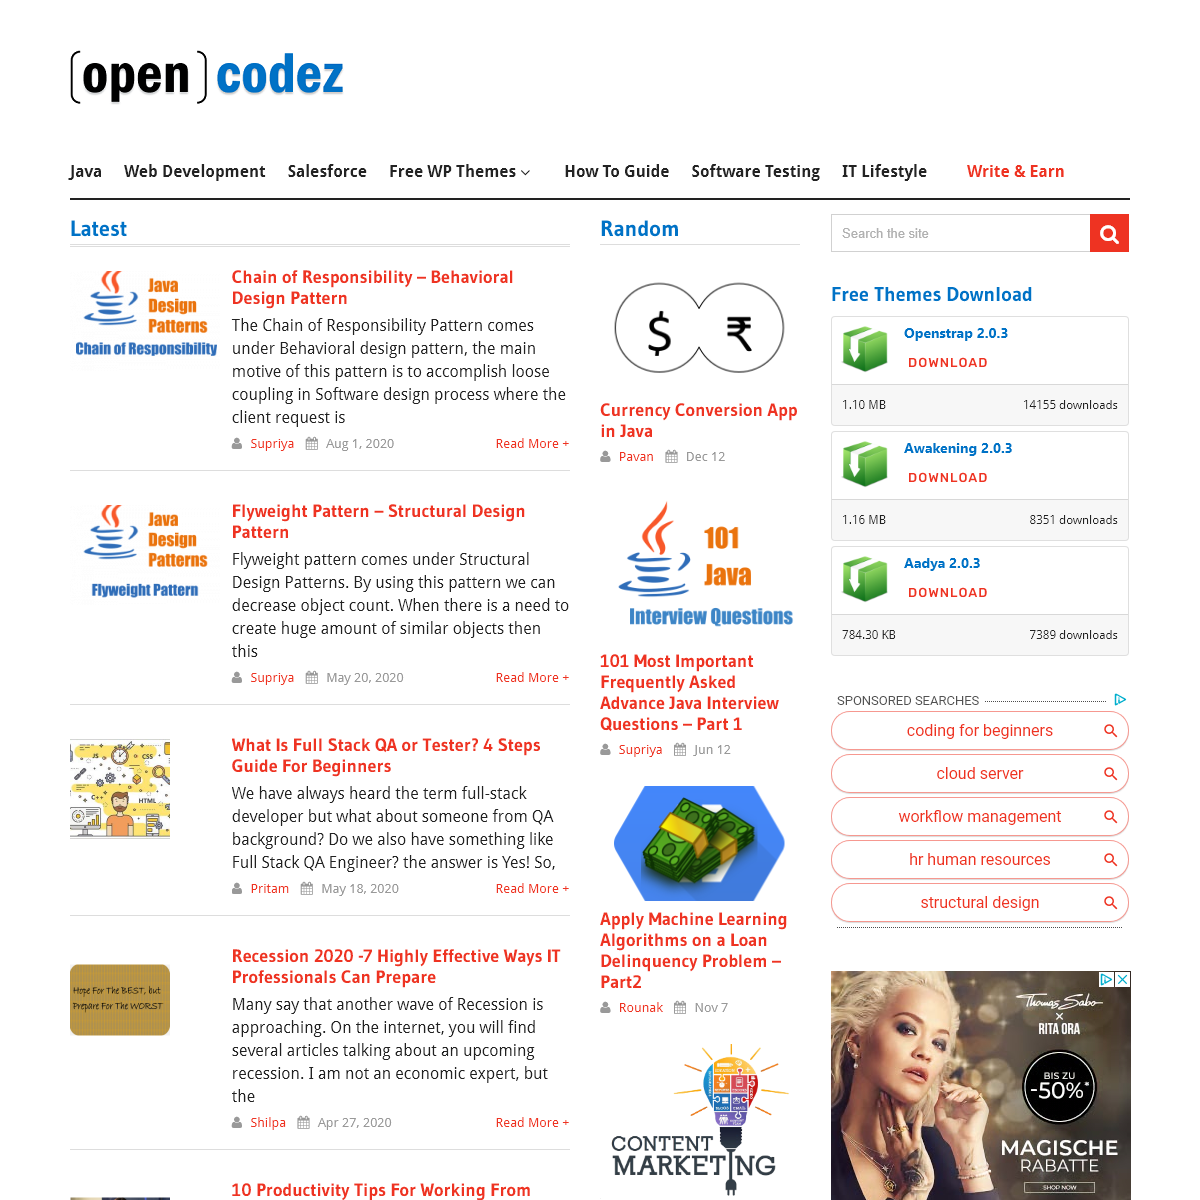 opencodez - develope - share - reuse